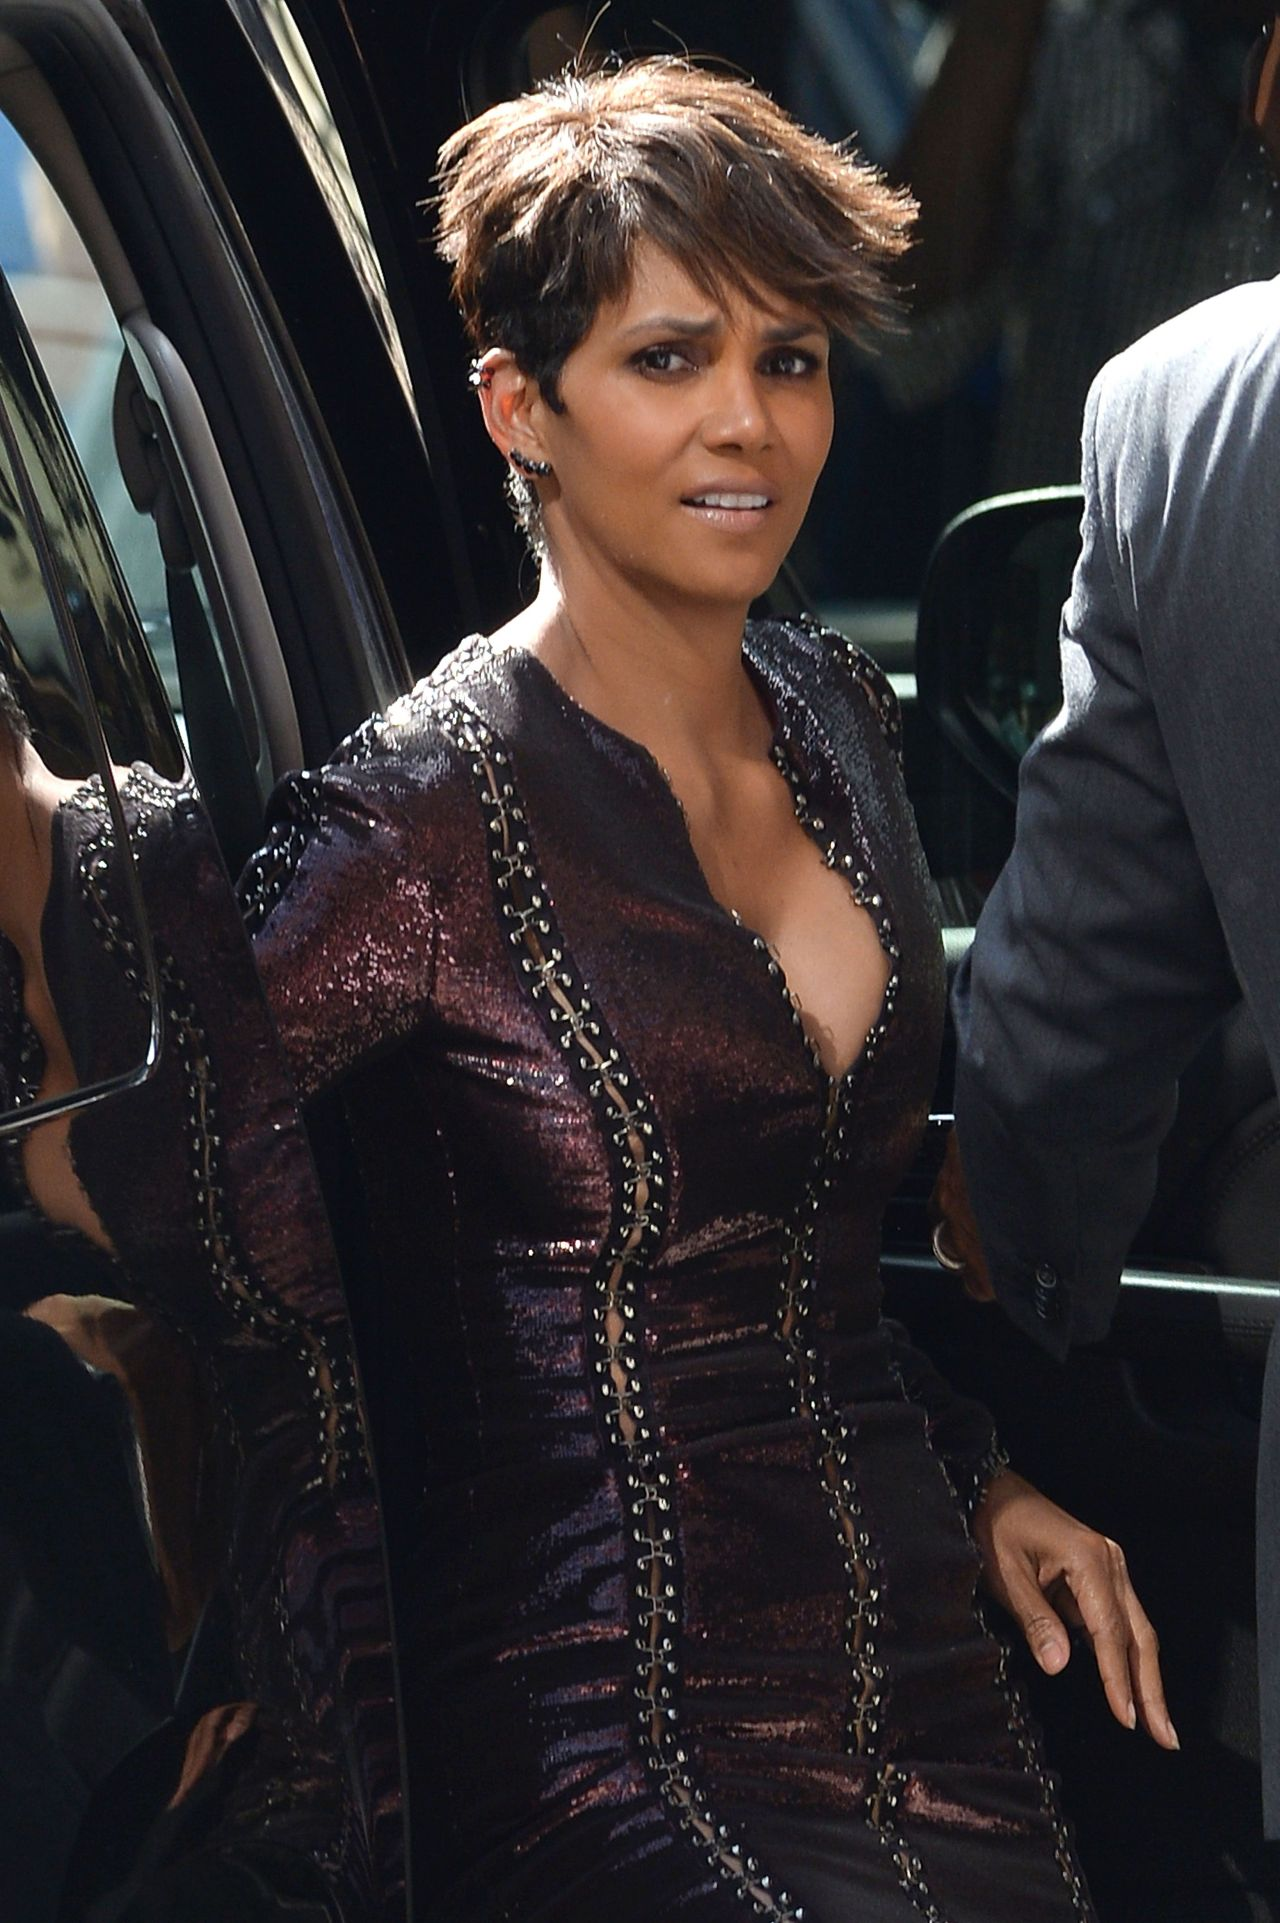 Halle Berry at The Late Show With David Letterman in New York City  July 2014